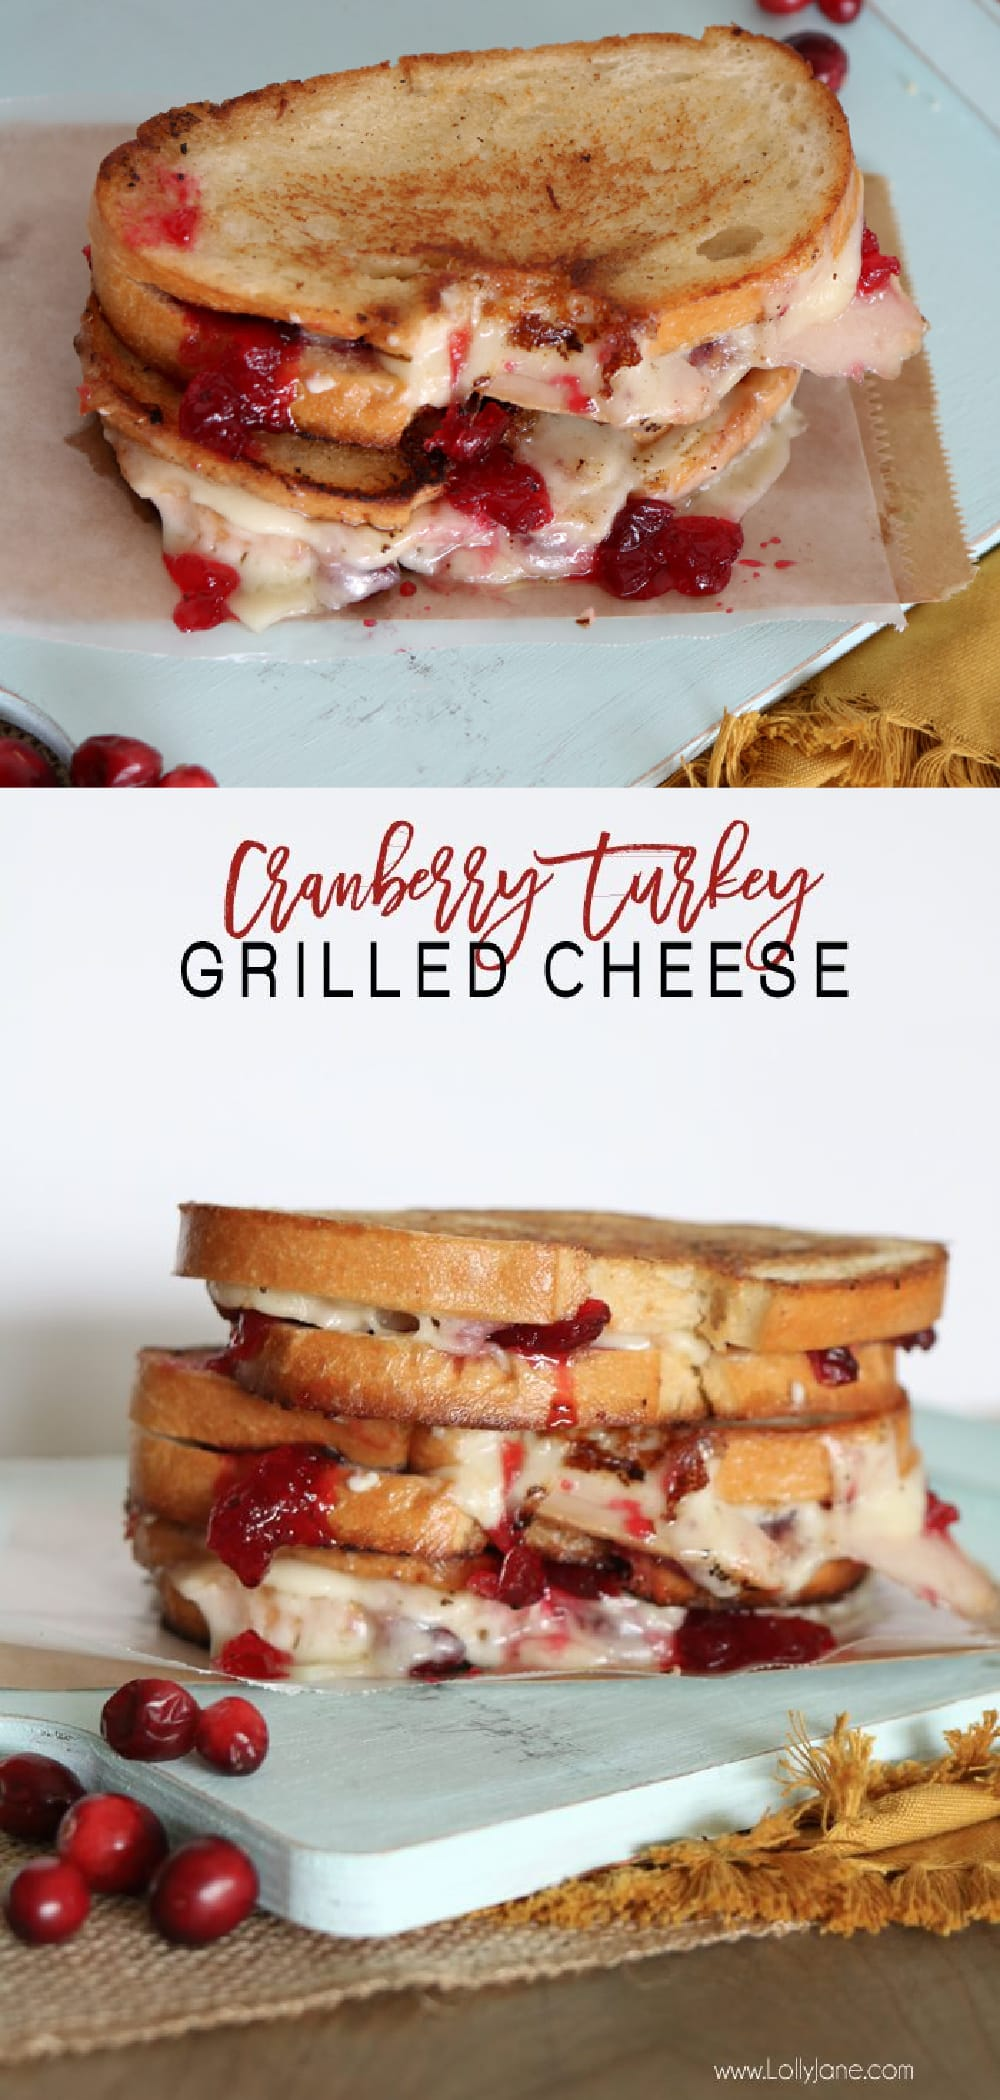 Melt-in-your-mouth Cranberry Turkey Grilled Cheese Sandwich, great way to use Thanksgiving leftovers! #cranberryturkey #turkeysandwich #thankgivingleftovers #thanksgivinglunch #lunchideas #sandwich #sandwichrecipe